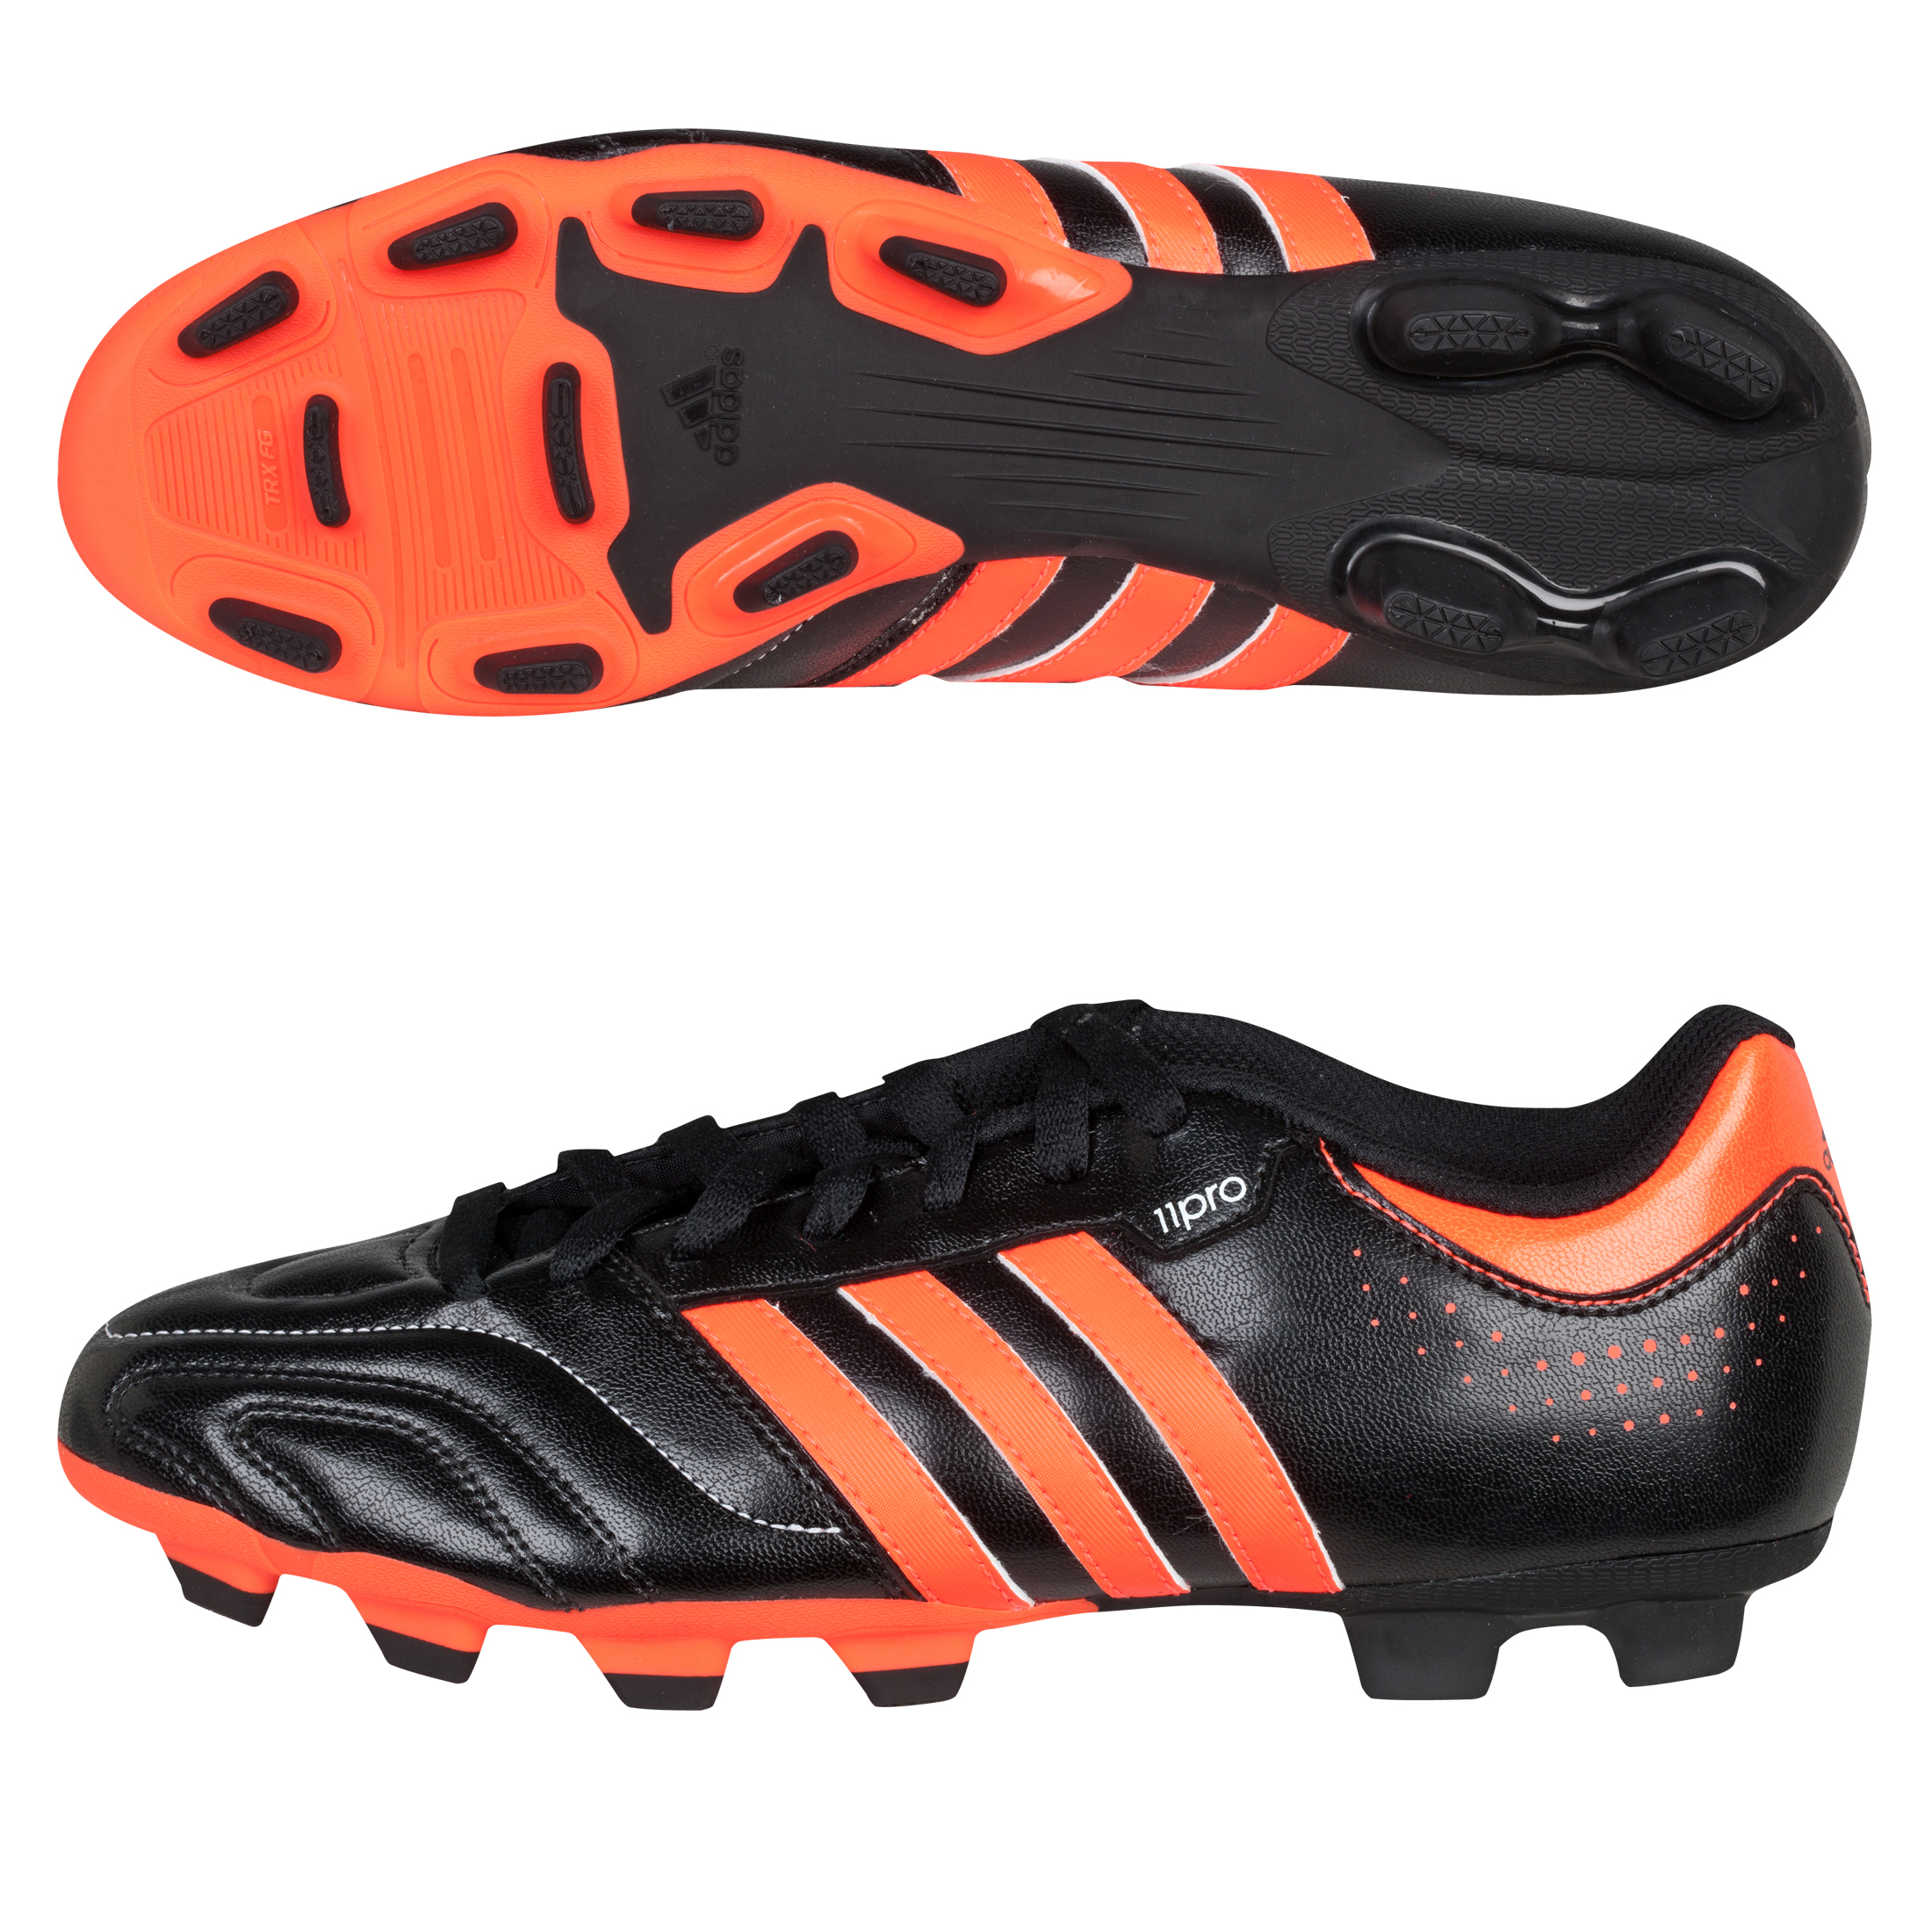 Adidas 11Questra TRX Firm Ground Football Boots - Black/Infrared/White